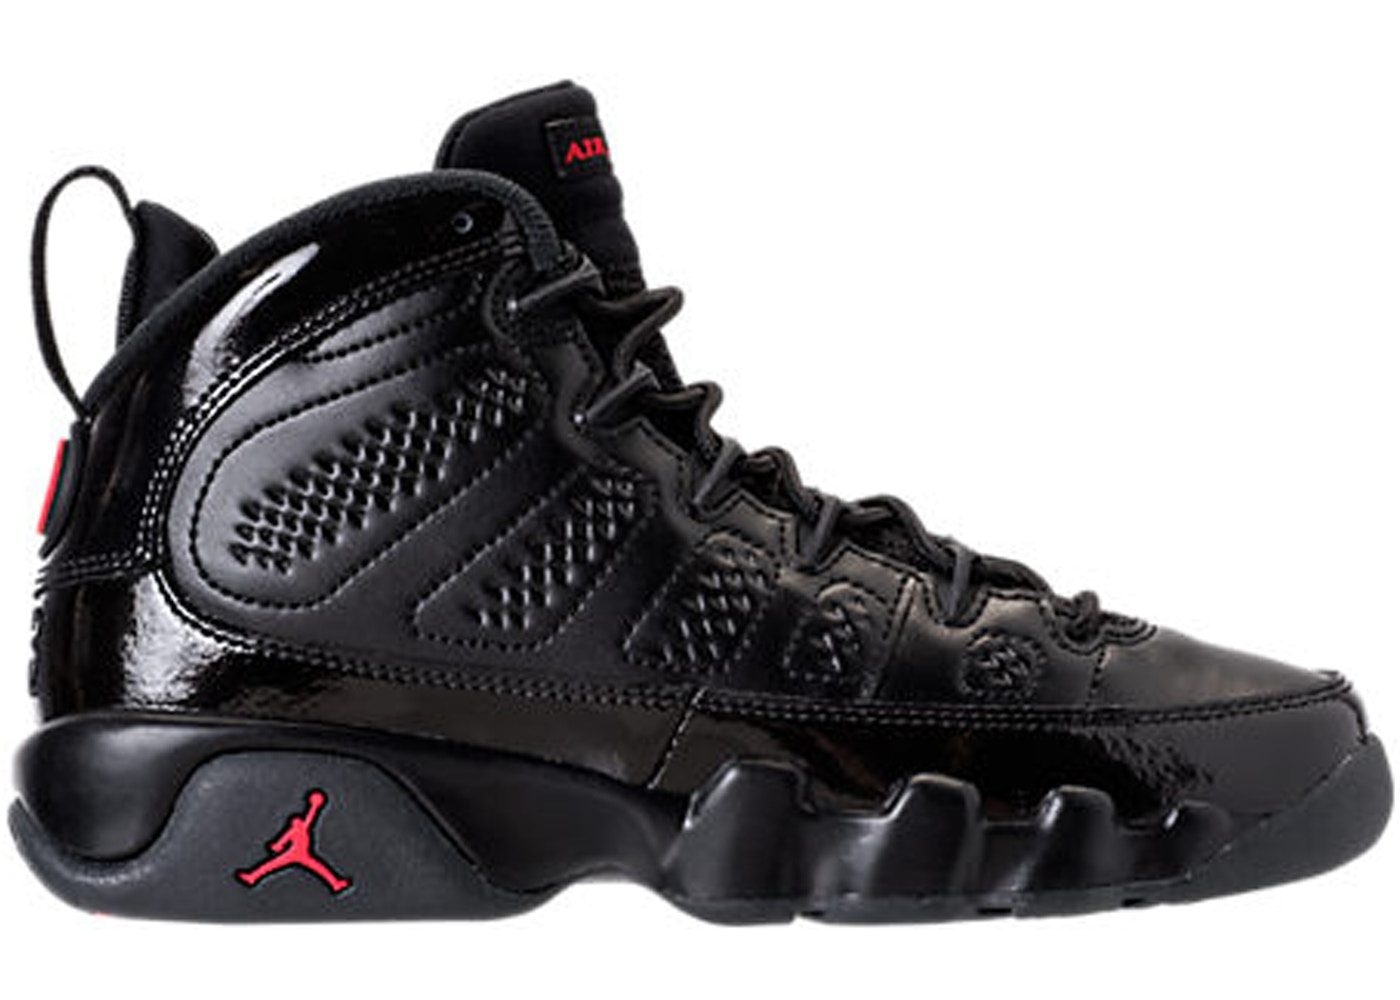 retro jordan 9 bred kids